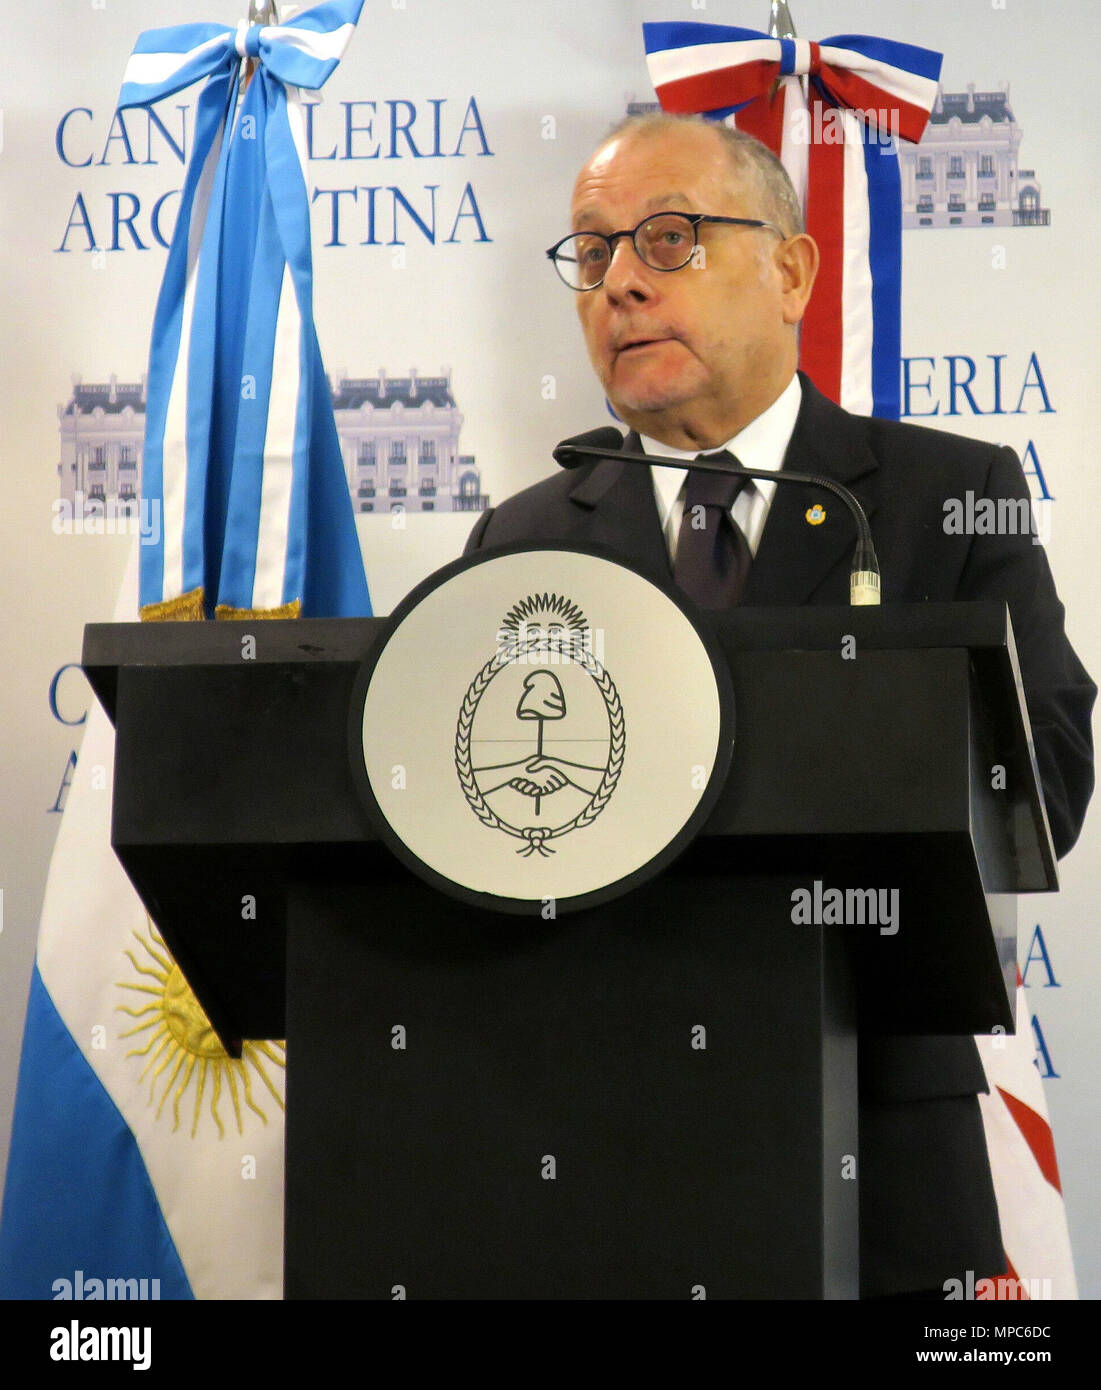 Ciudad De Buenos Aires, Argentina. 12th Dec, 2017. British Secretary of State of Foreign Affairs, Boris Johnson (out of frame), and Argentinian Foreign Minister Jorge Faurie, deliver a joint press conference after a meeting in Buenos Aires, Argentina, 22 May 2018. The UK might sing a free trade agreement with no restrictions, with Argentina after the exit of the European Union (EU). Credit: Irene Valiente/EFE/Alamy Live News - Stock Image